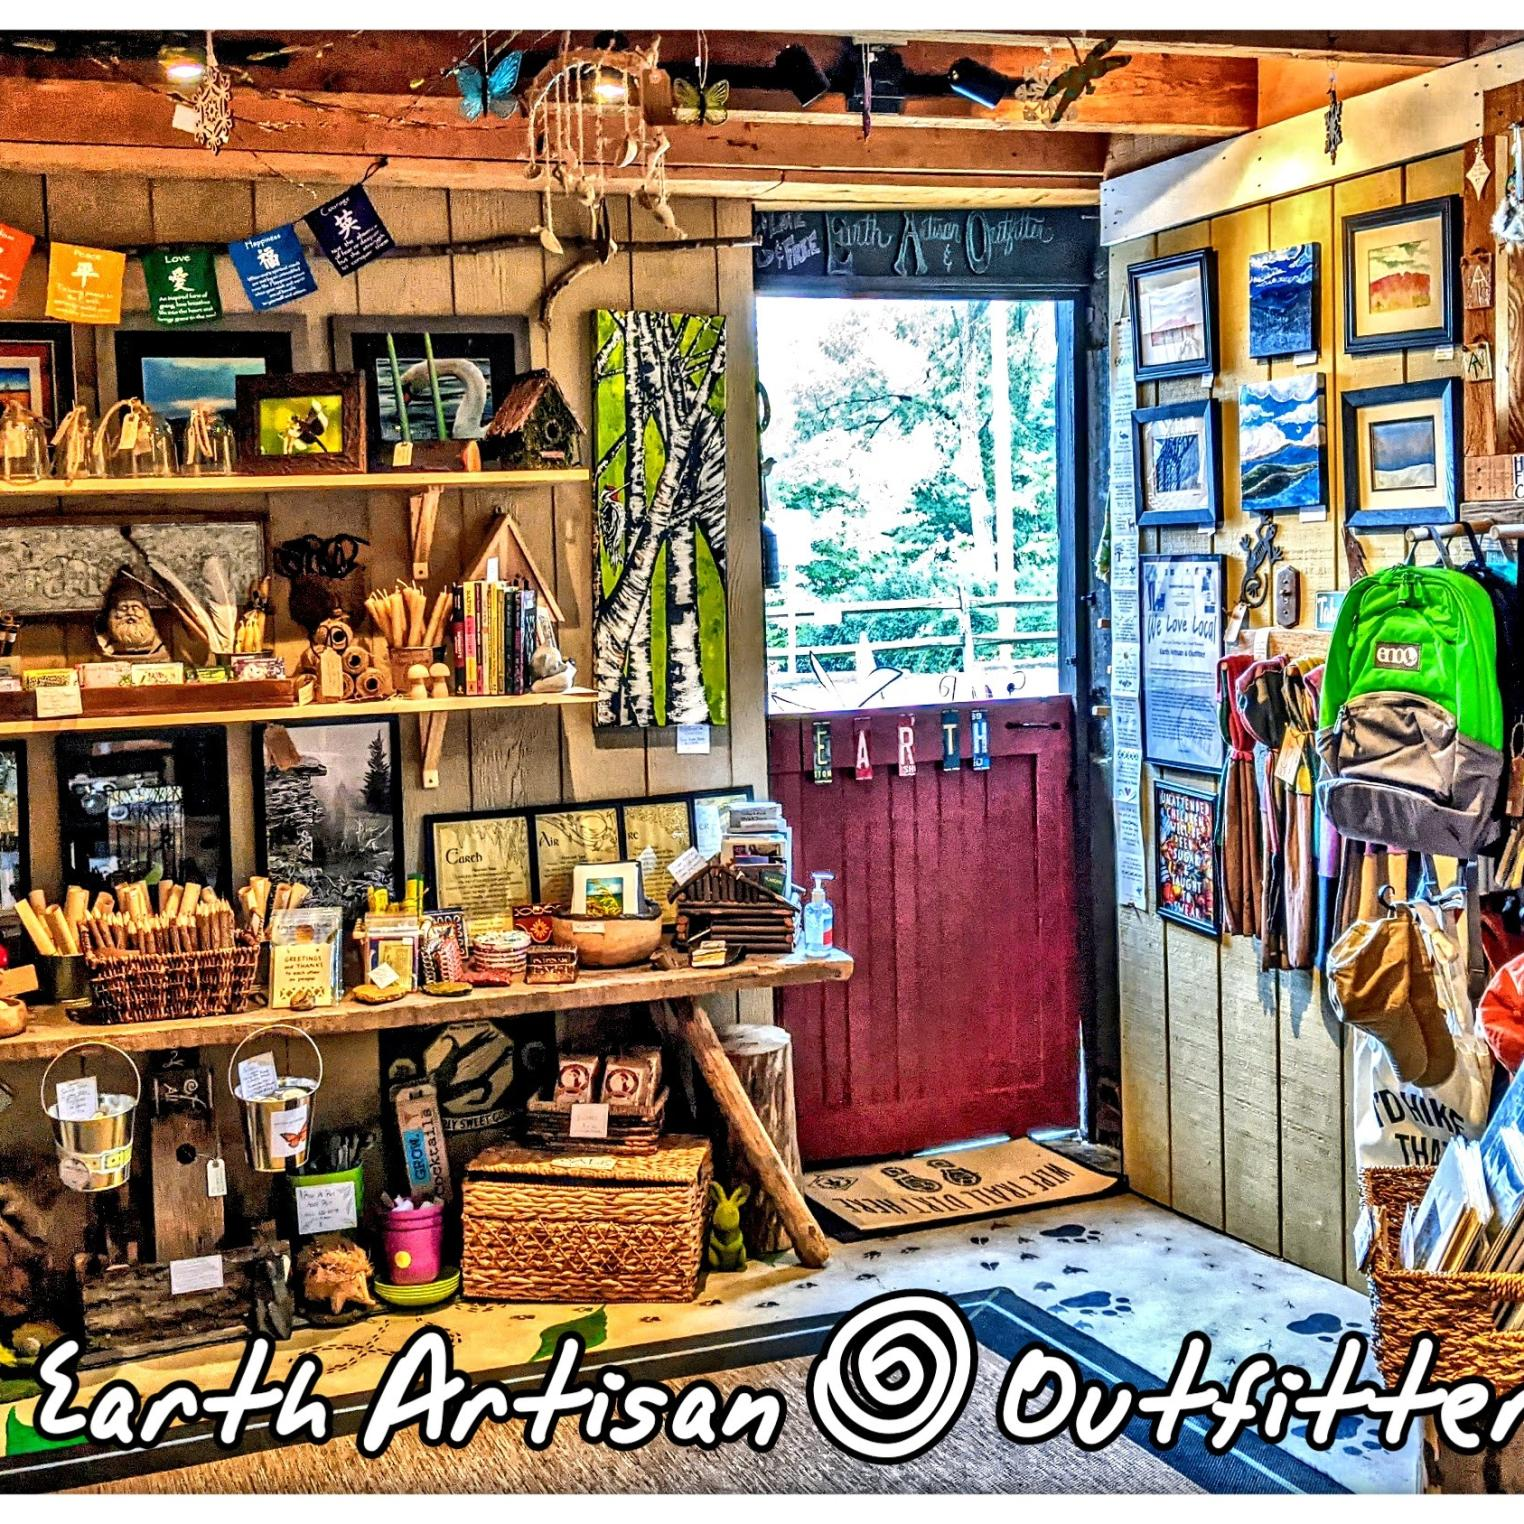 Earth Artisan & Outfitter